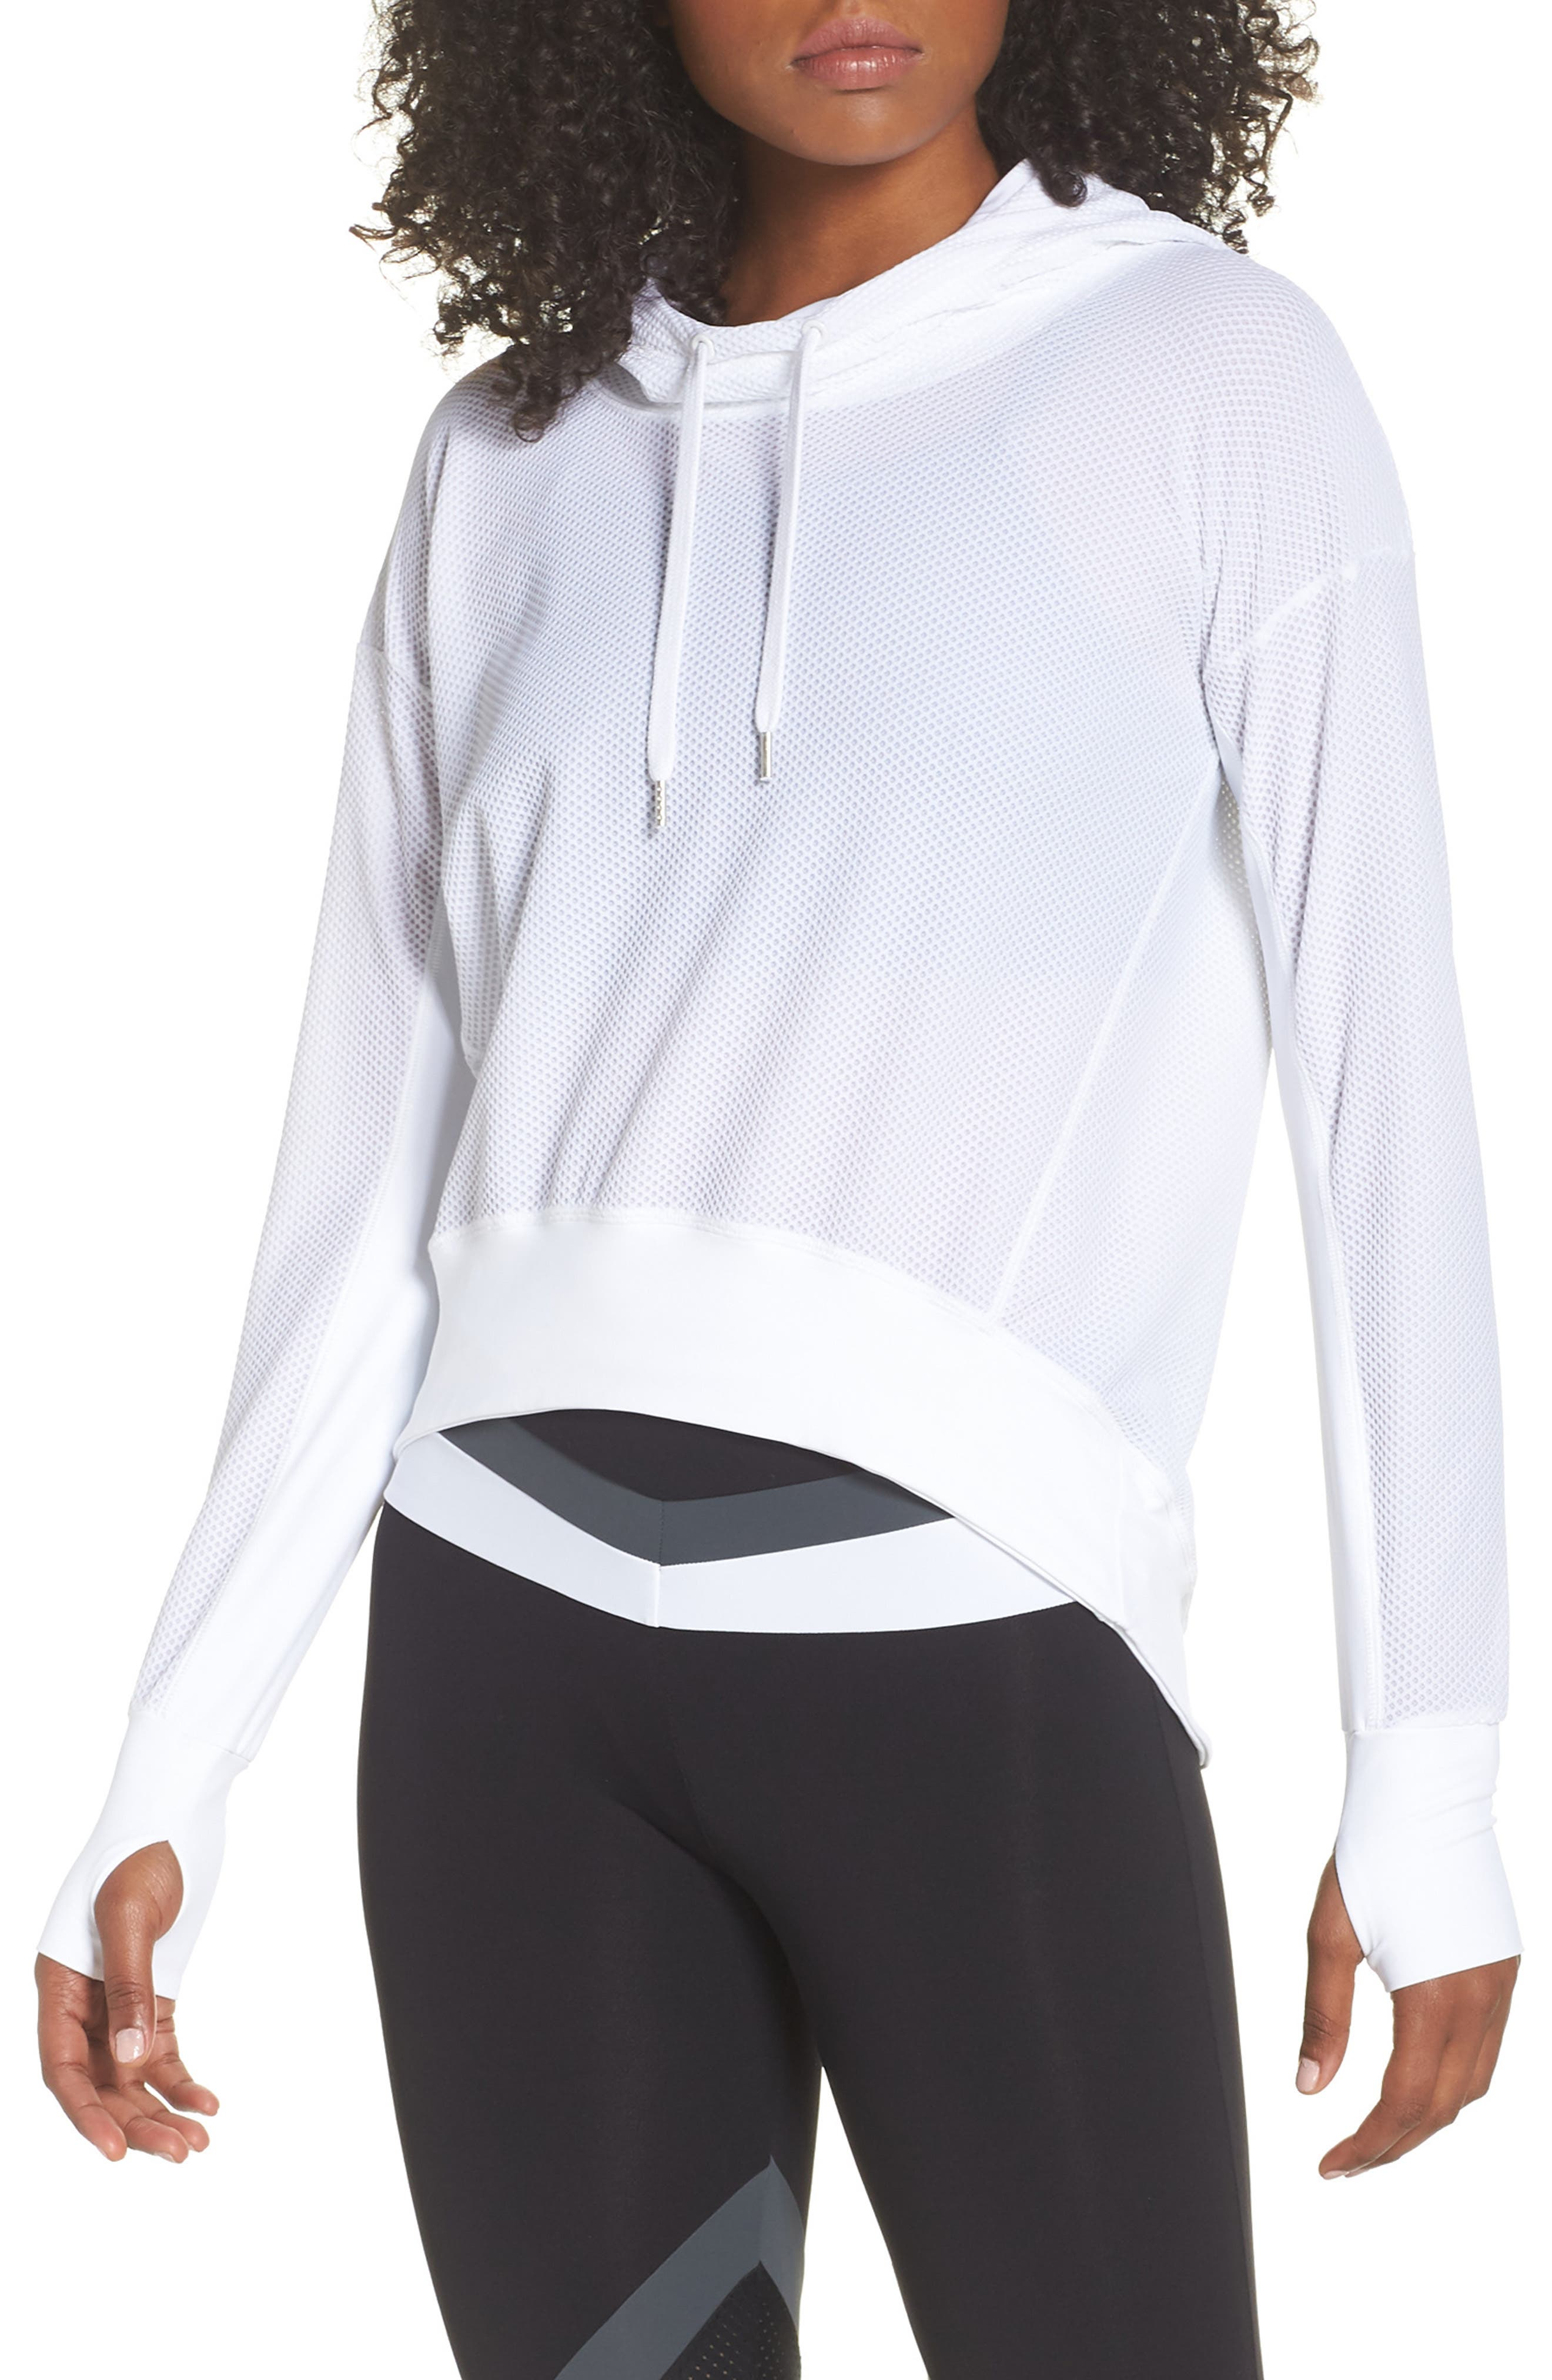 BoomBoom Athletica Bubble Mesh Hoodie,                             Main thumbnail 1, color,                             White